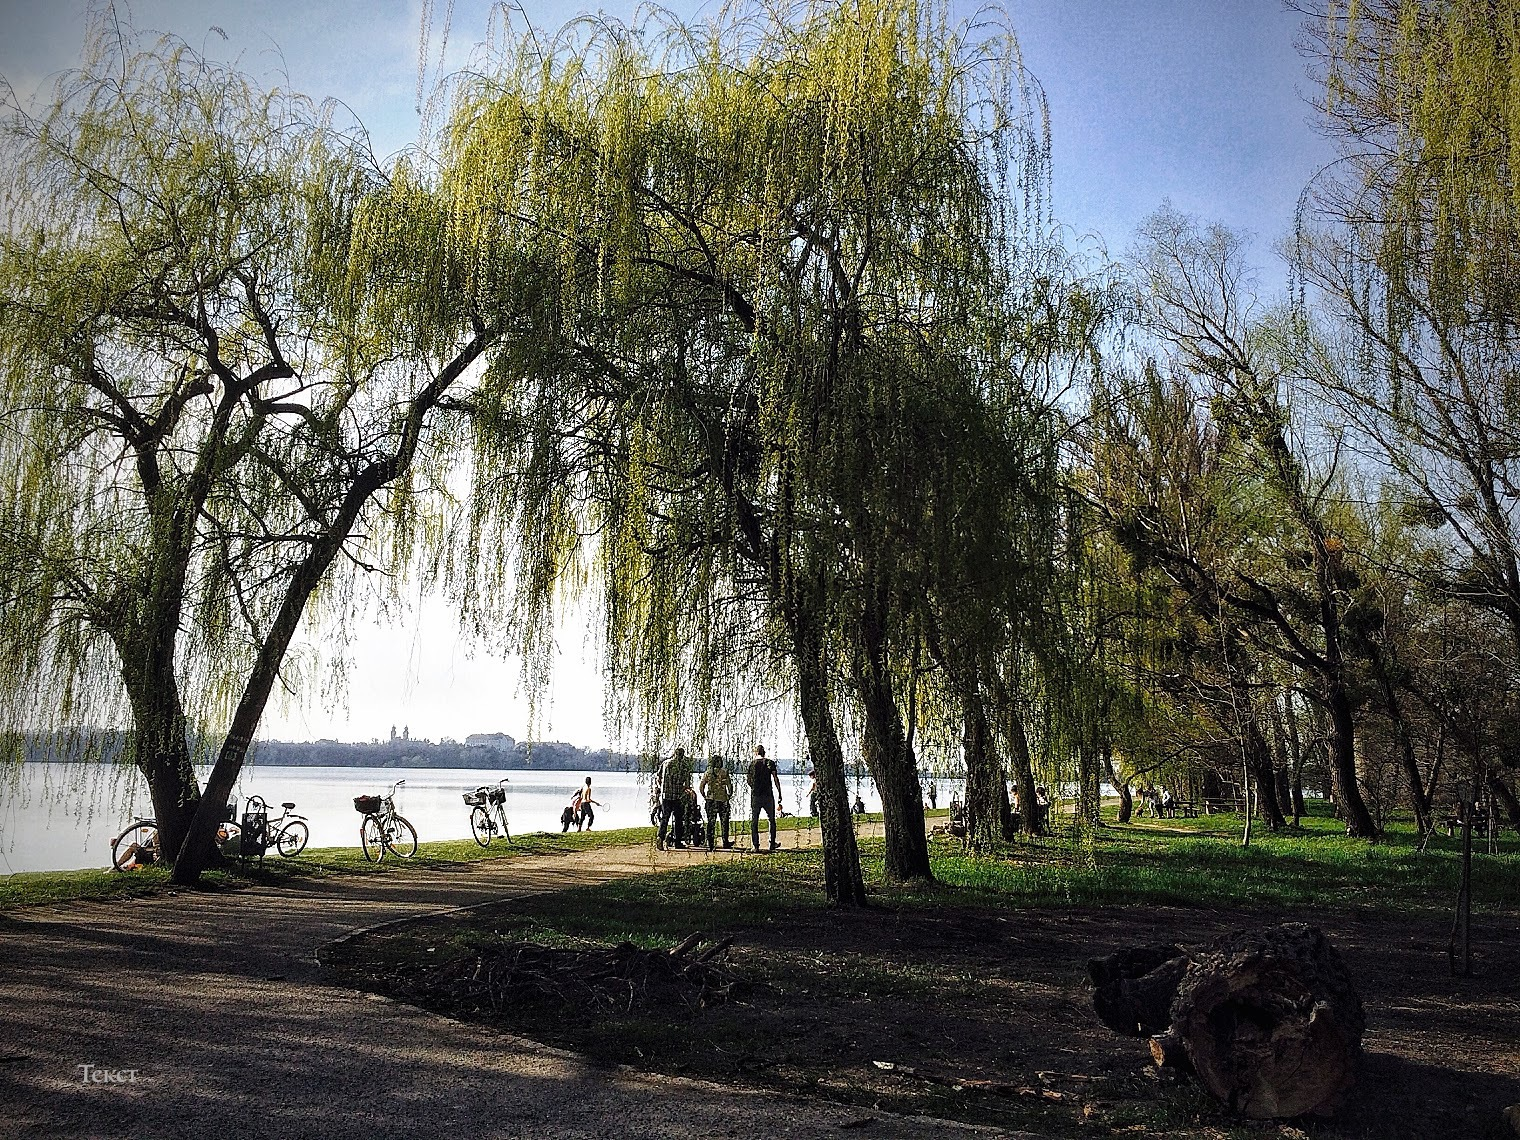 people, bikes, willow by Mitalier